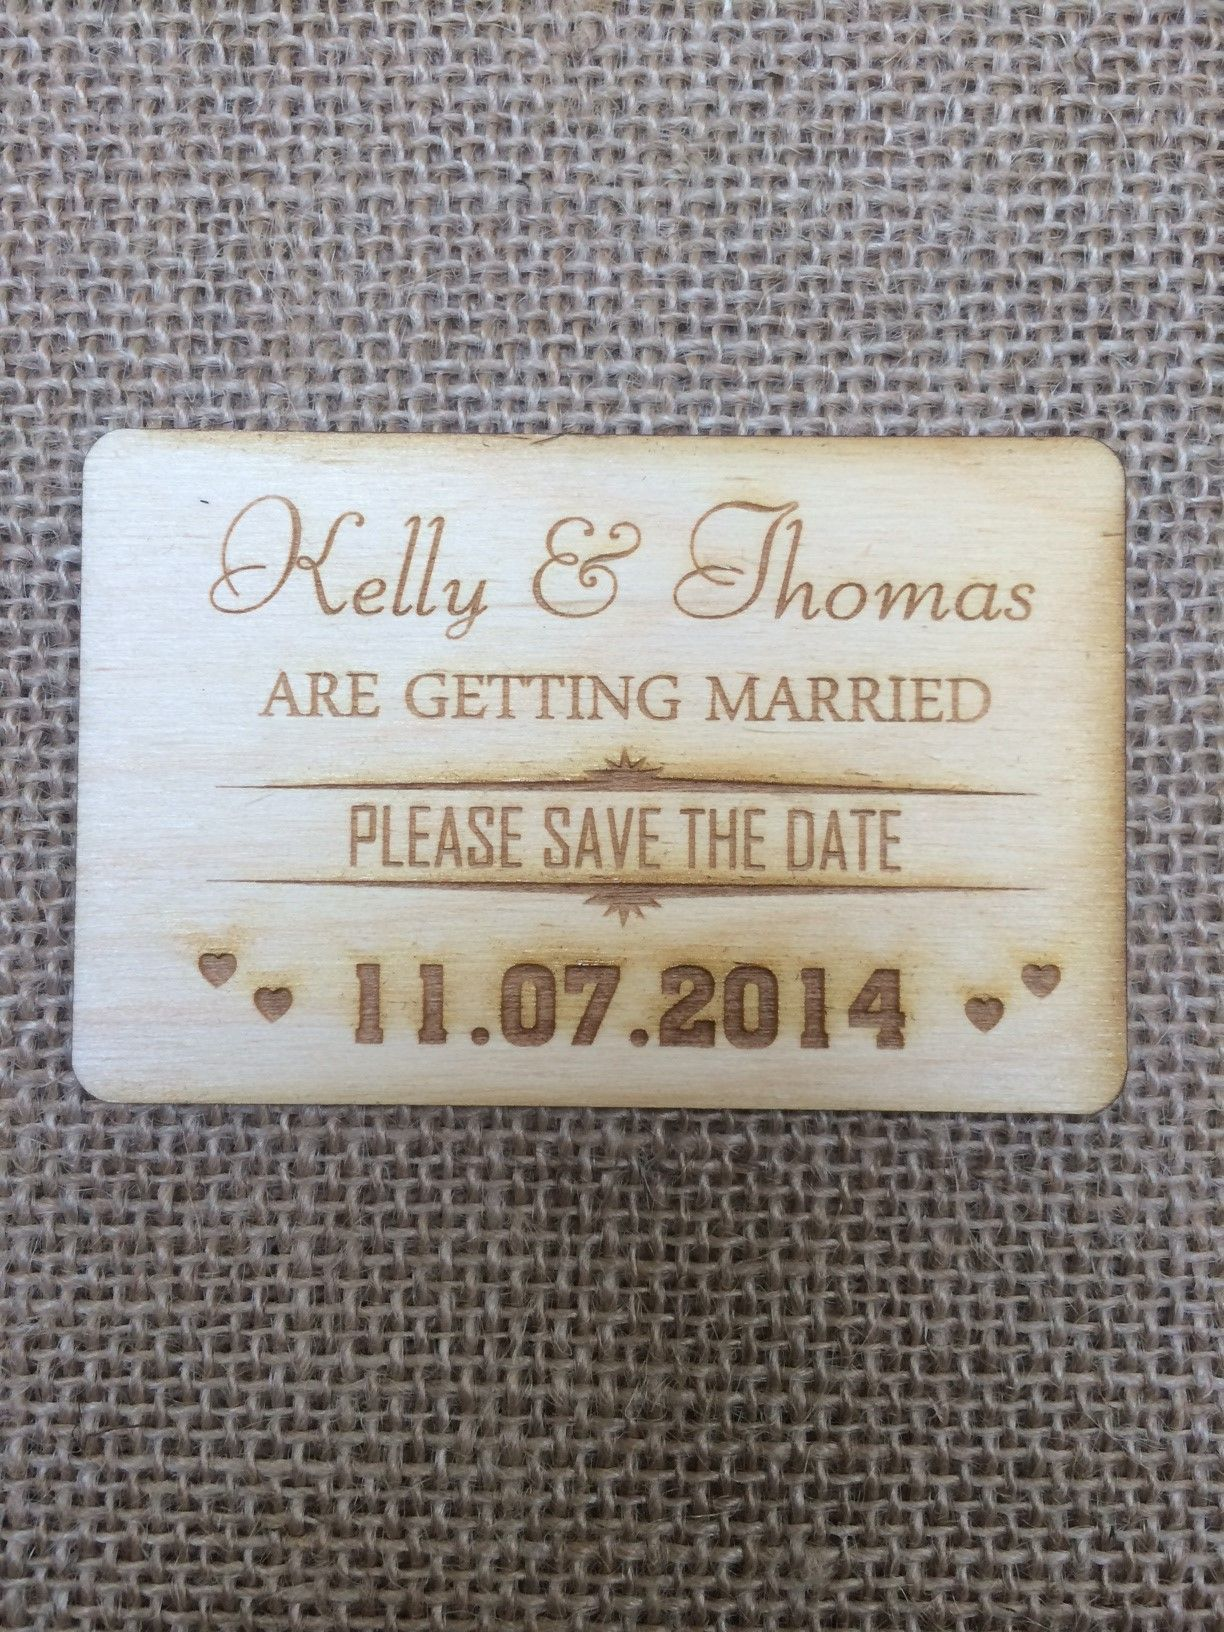 Business card size save the date engraved on to 3mm birch wood business card size save the date engraved on to 3mm birch wood reheart Gallery